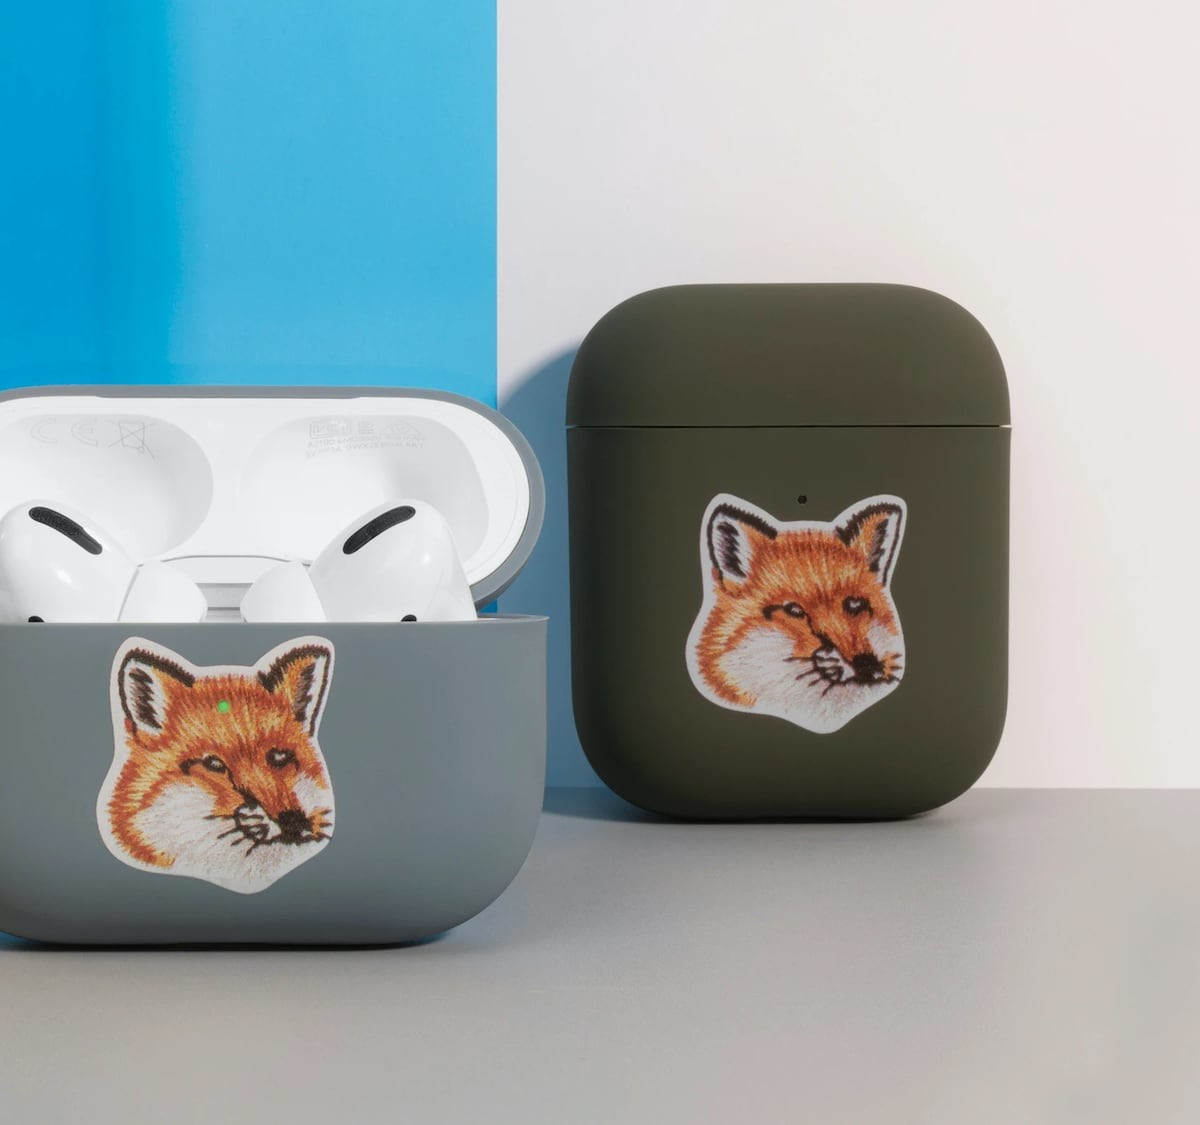 Native Union Maison Kitsuné case for AirPods has an adorable fox head on it